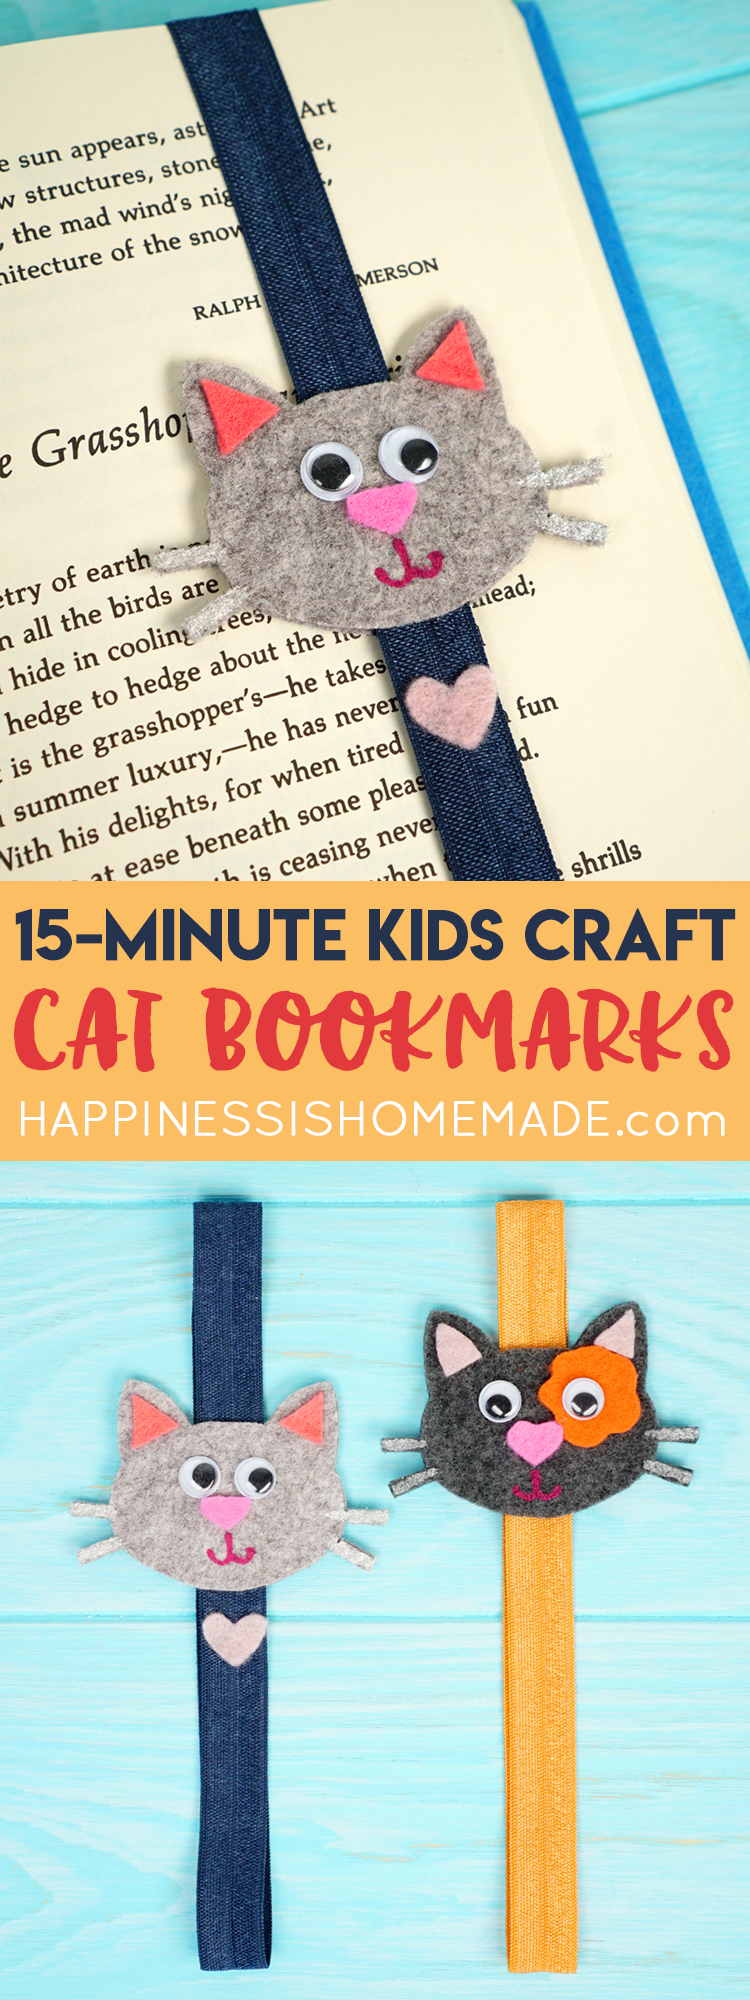 Easy Craft For Kids Cat Bookmarks Happiness Is Homemade